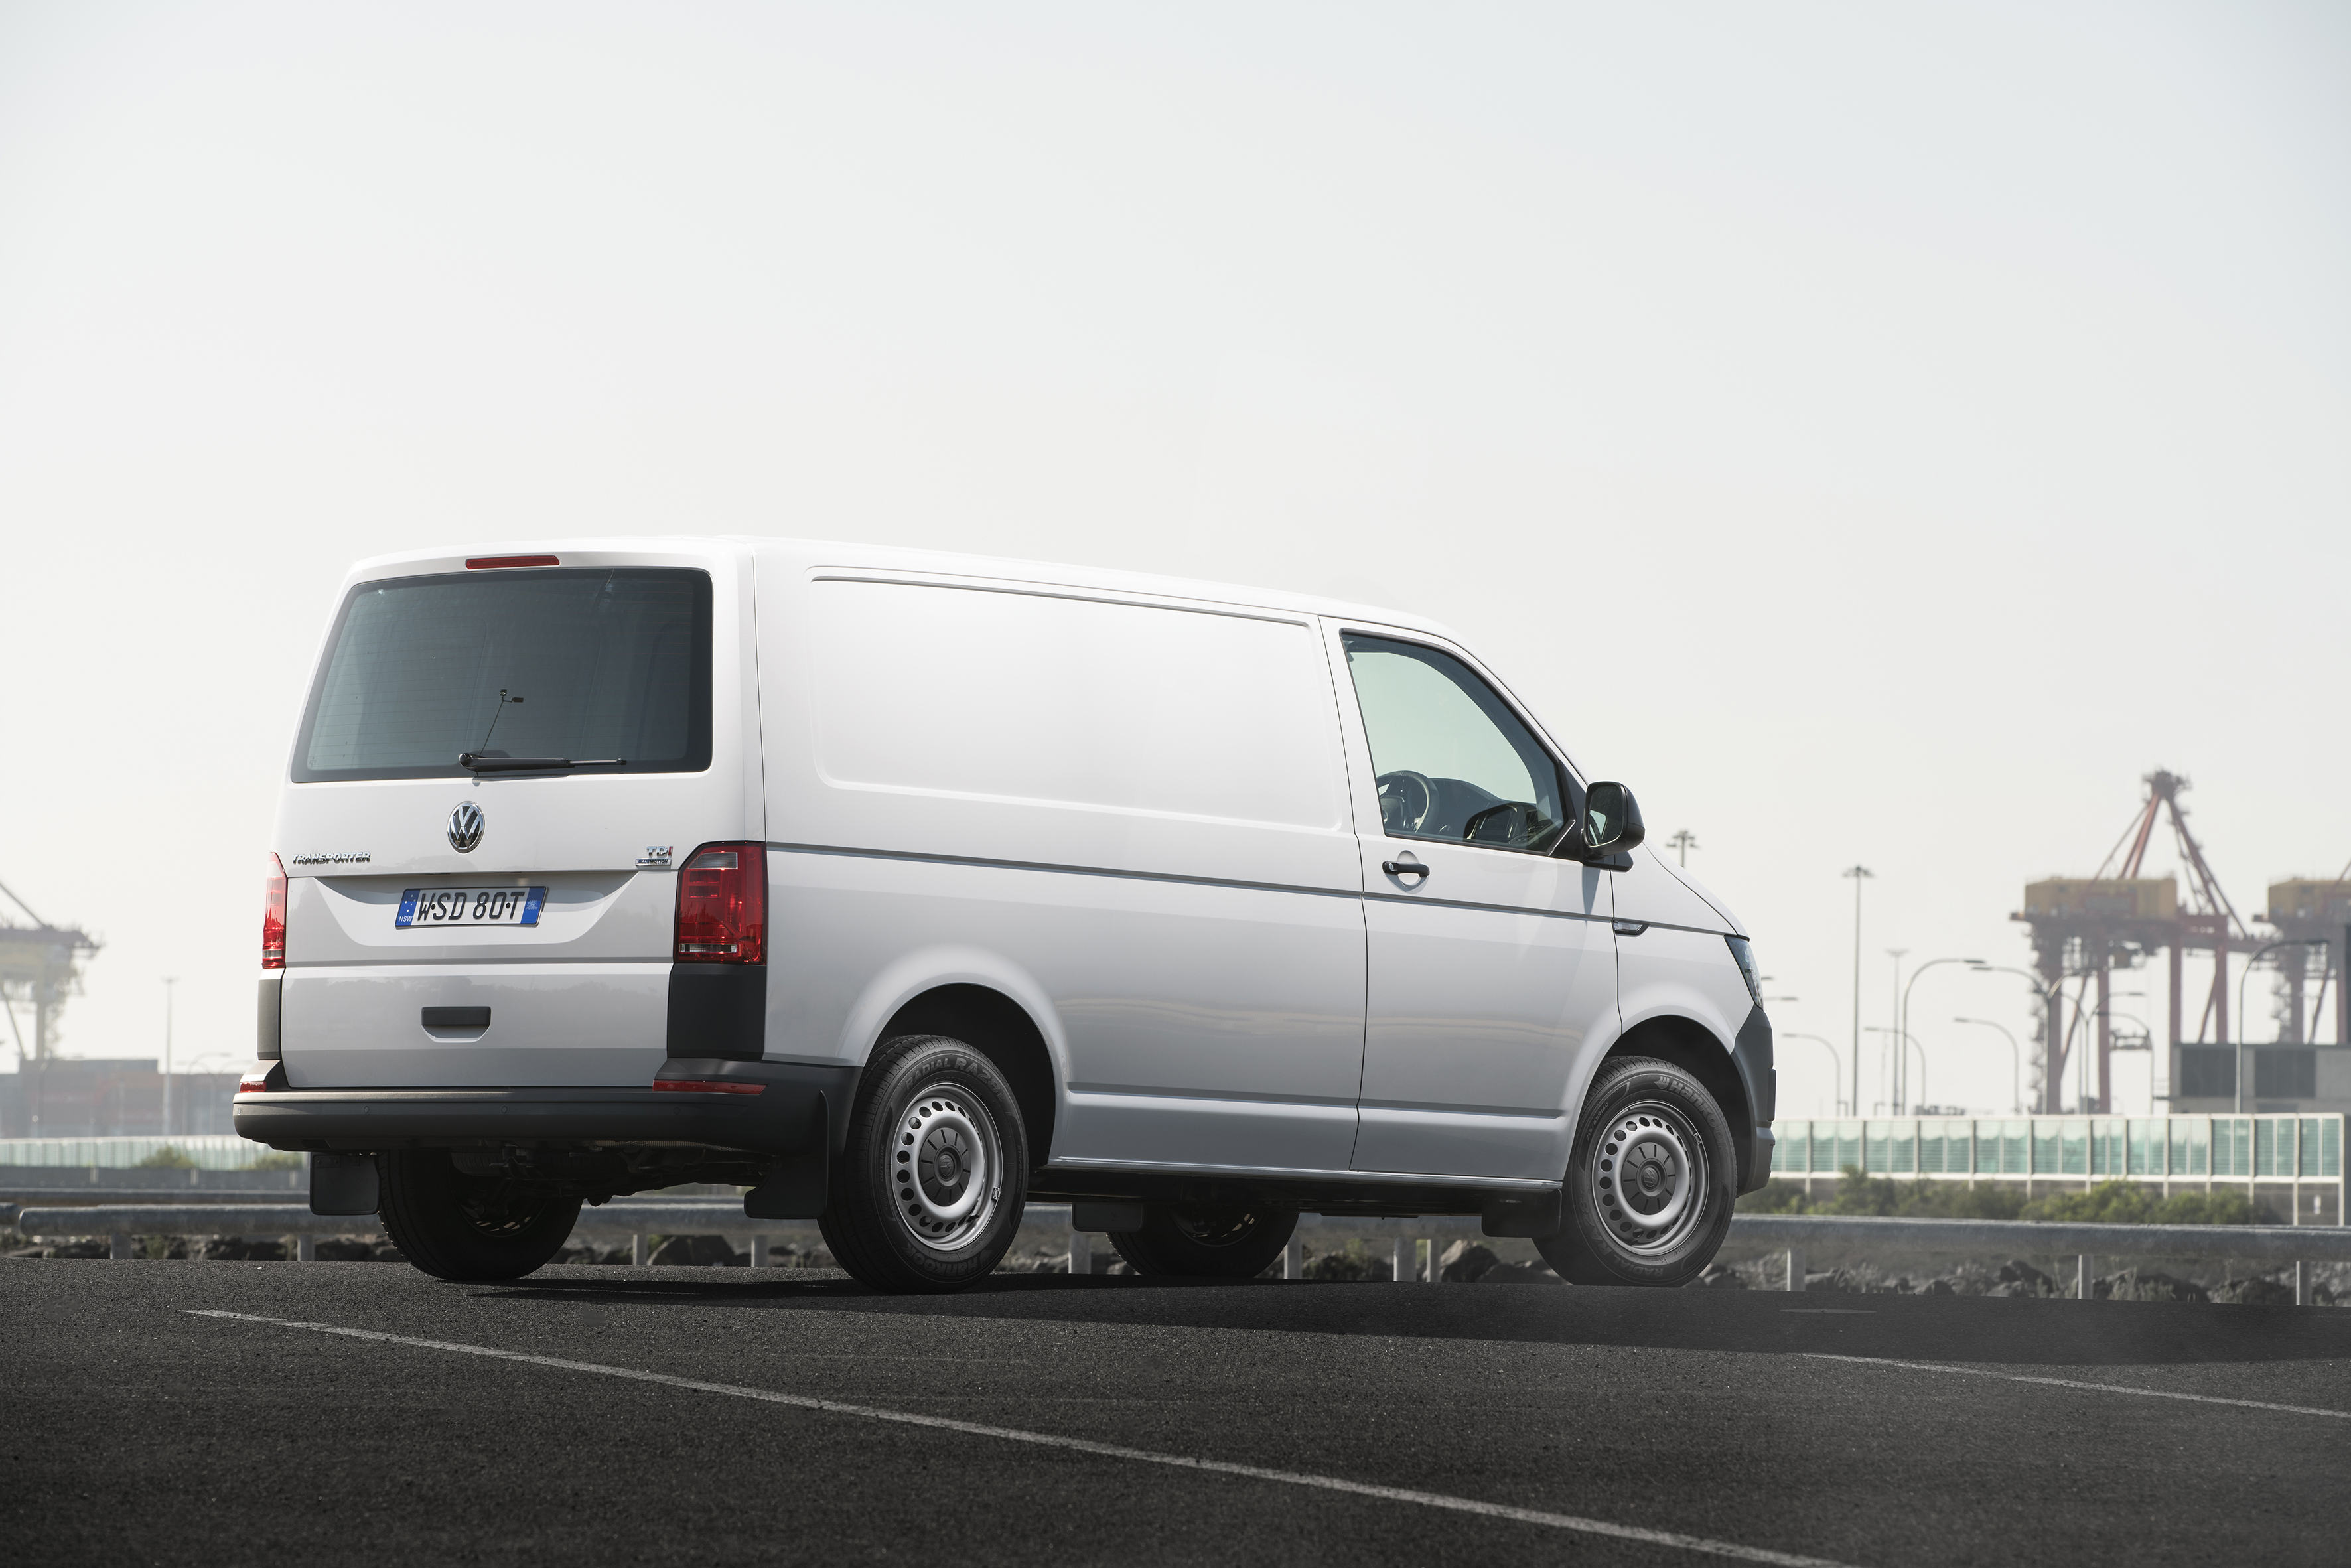 2016 Volkswagen Transporter Pricing And Specs T6 Generation Van And Cab Chassis Variants Arrive Caradvice